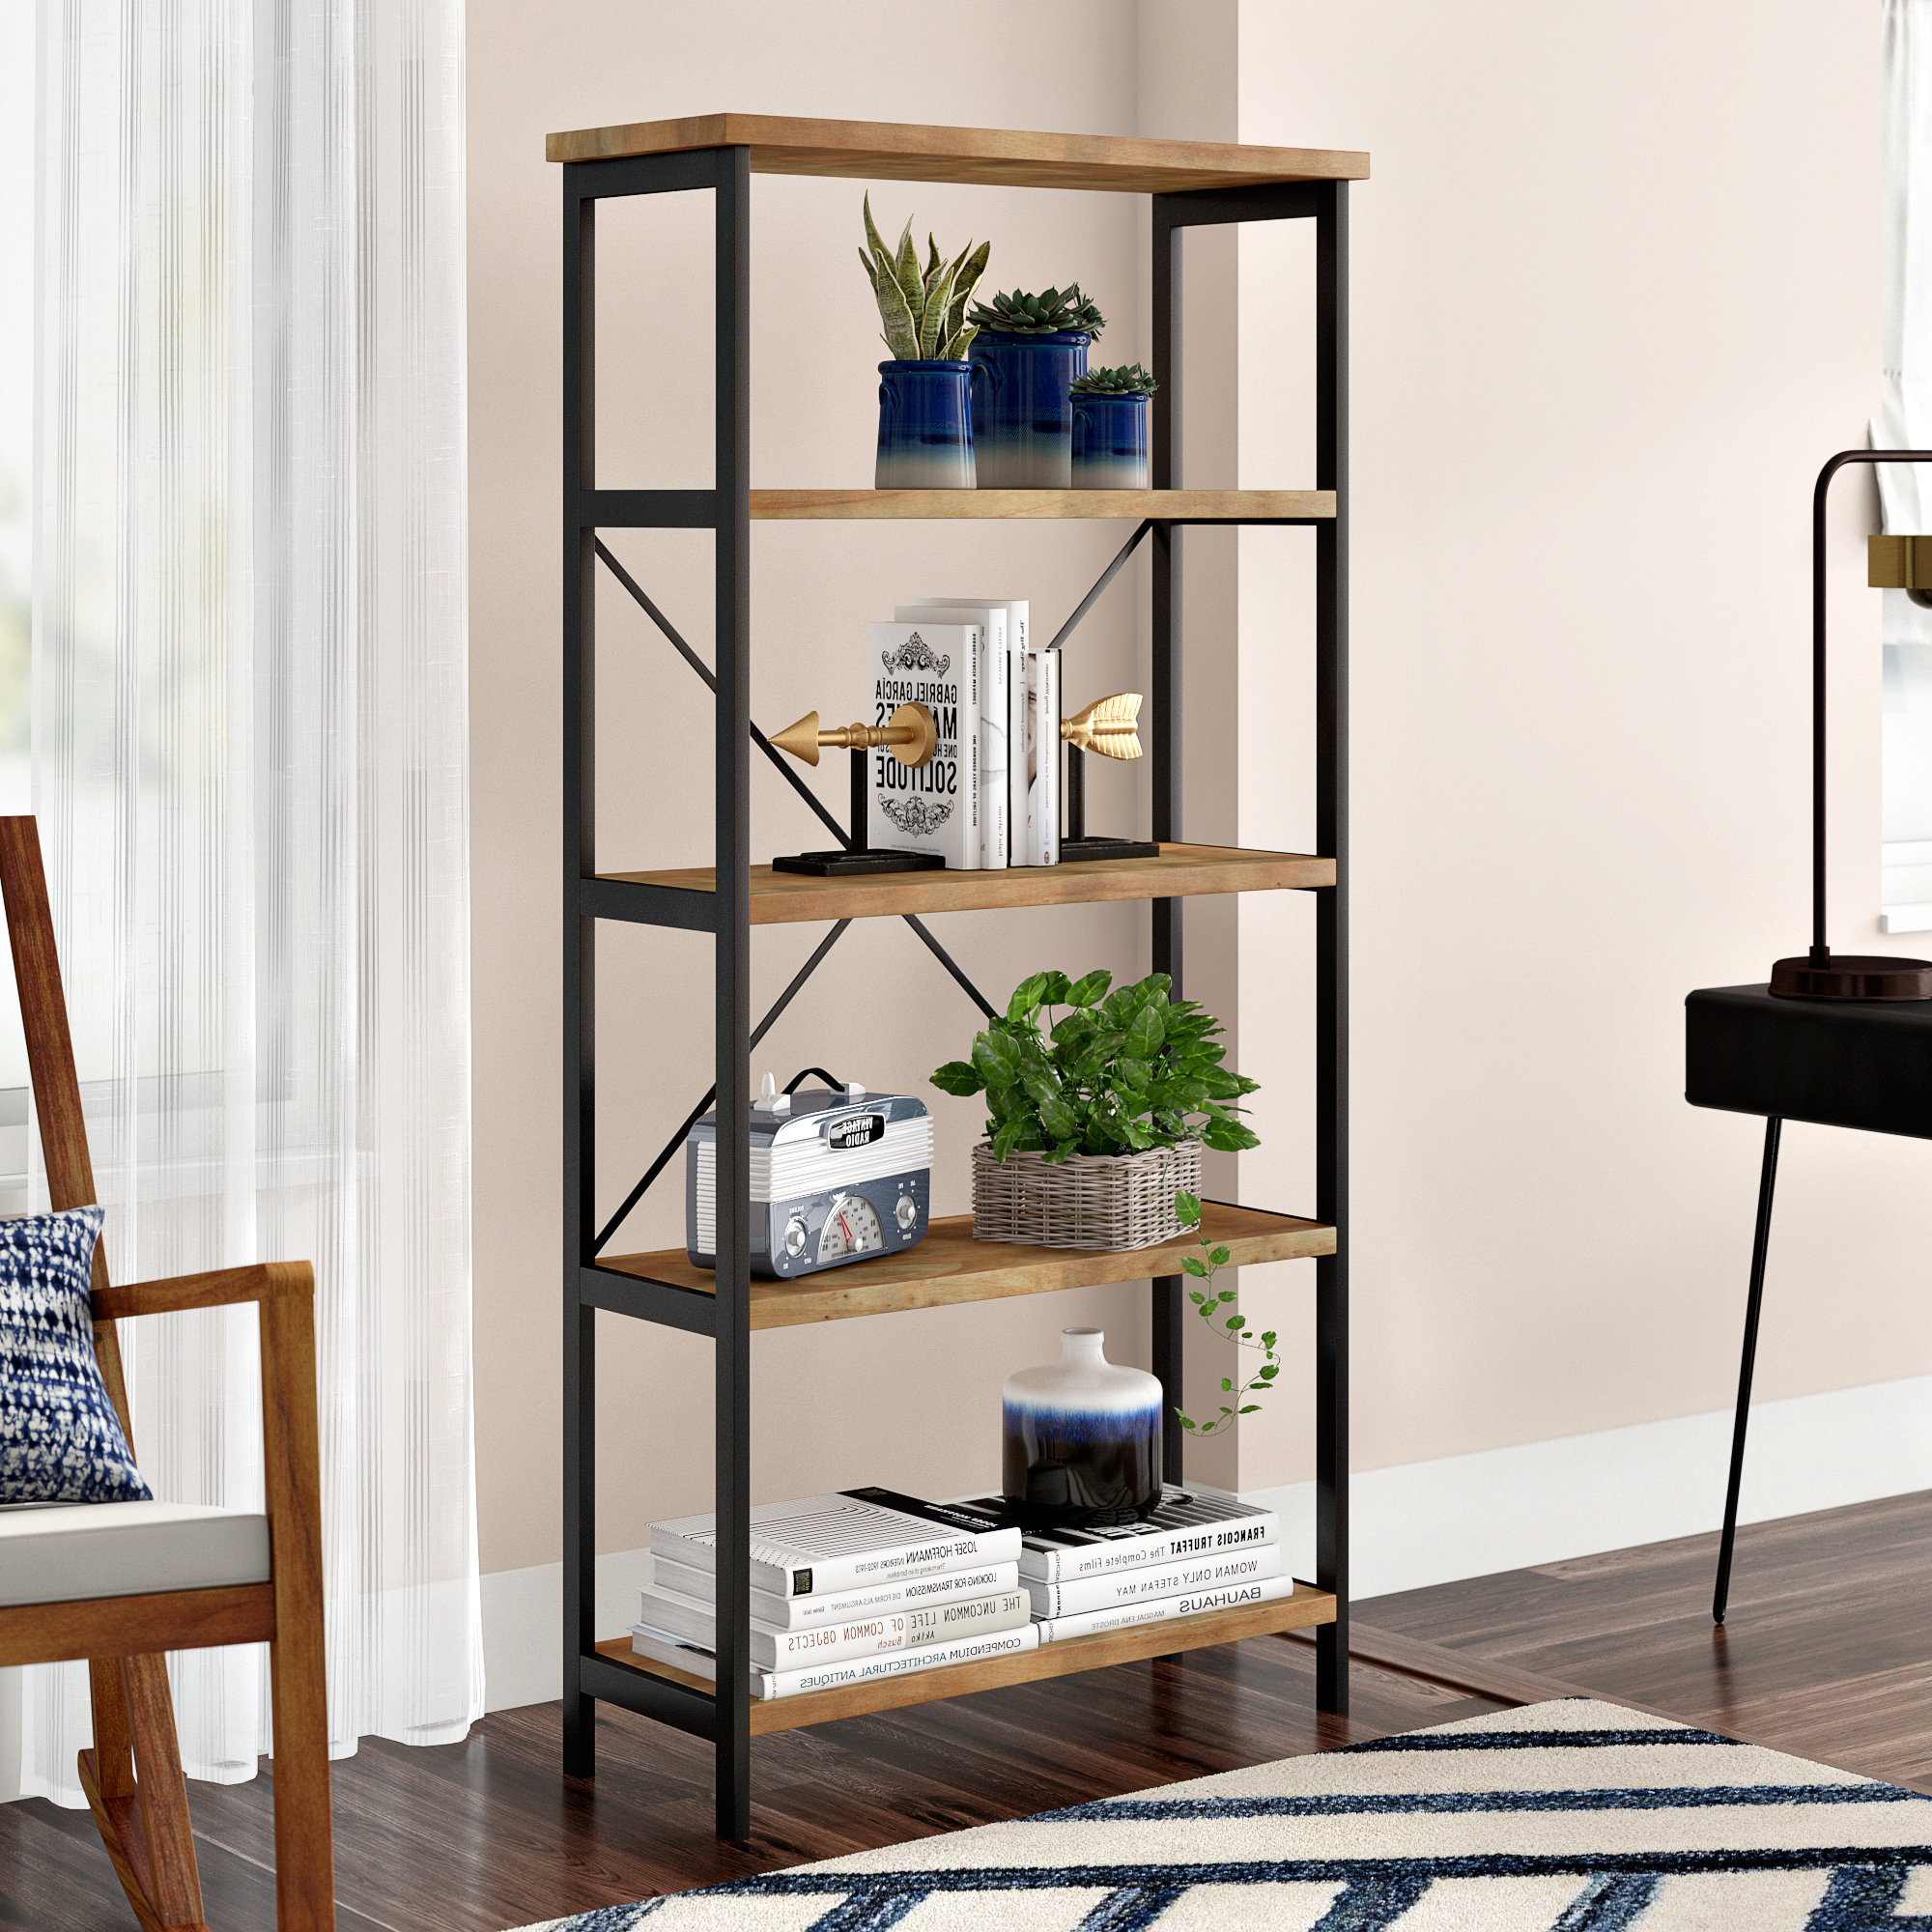 Bowman Etagere Bookcases Pertaining To Well Known Mercury Row Parthenia Etagere Bookcase & Reviews (Gallery 11 of 20)